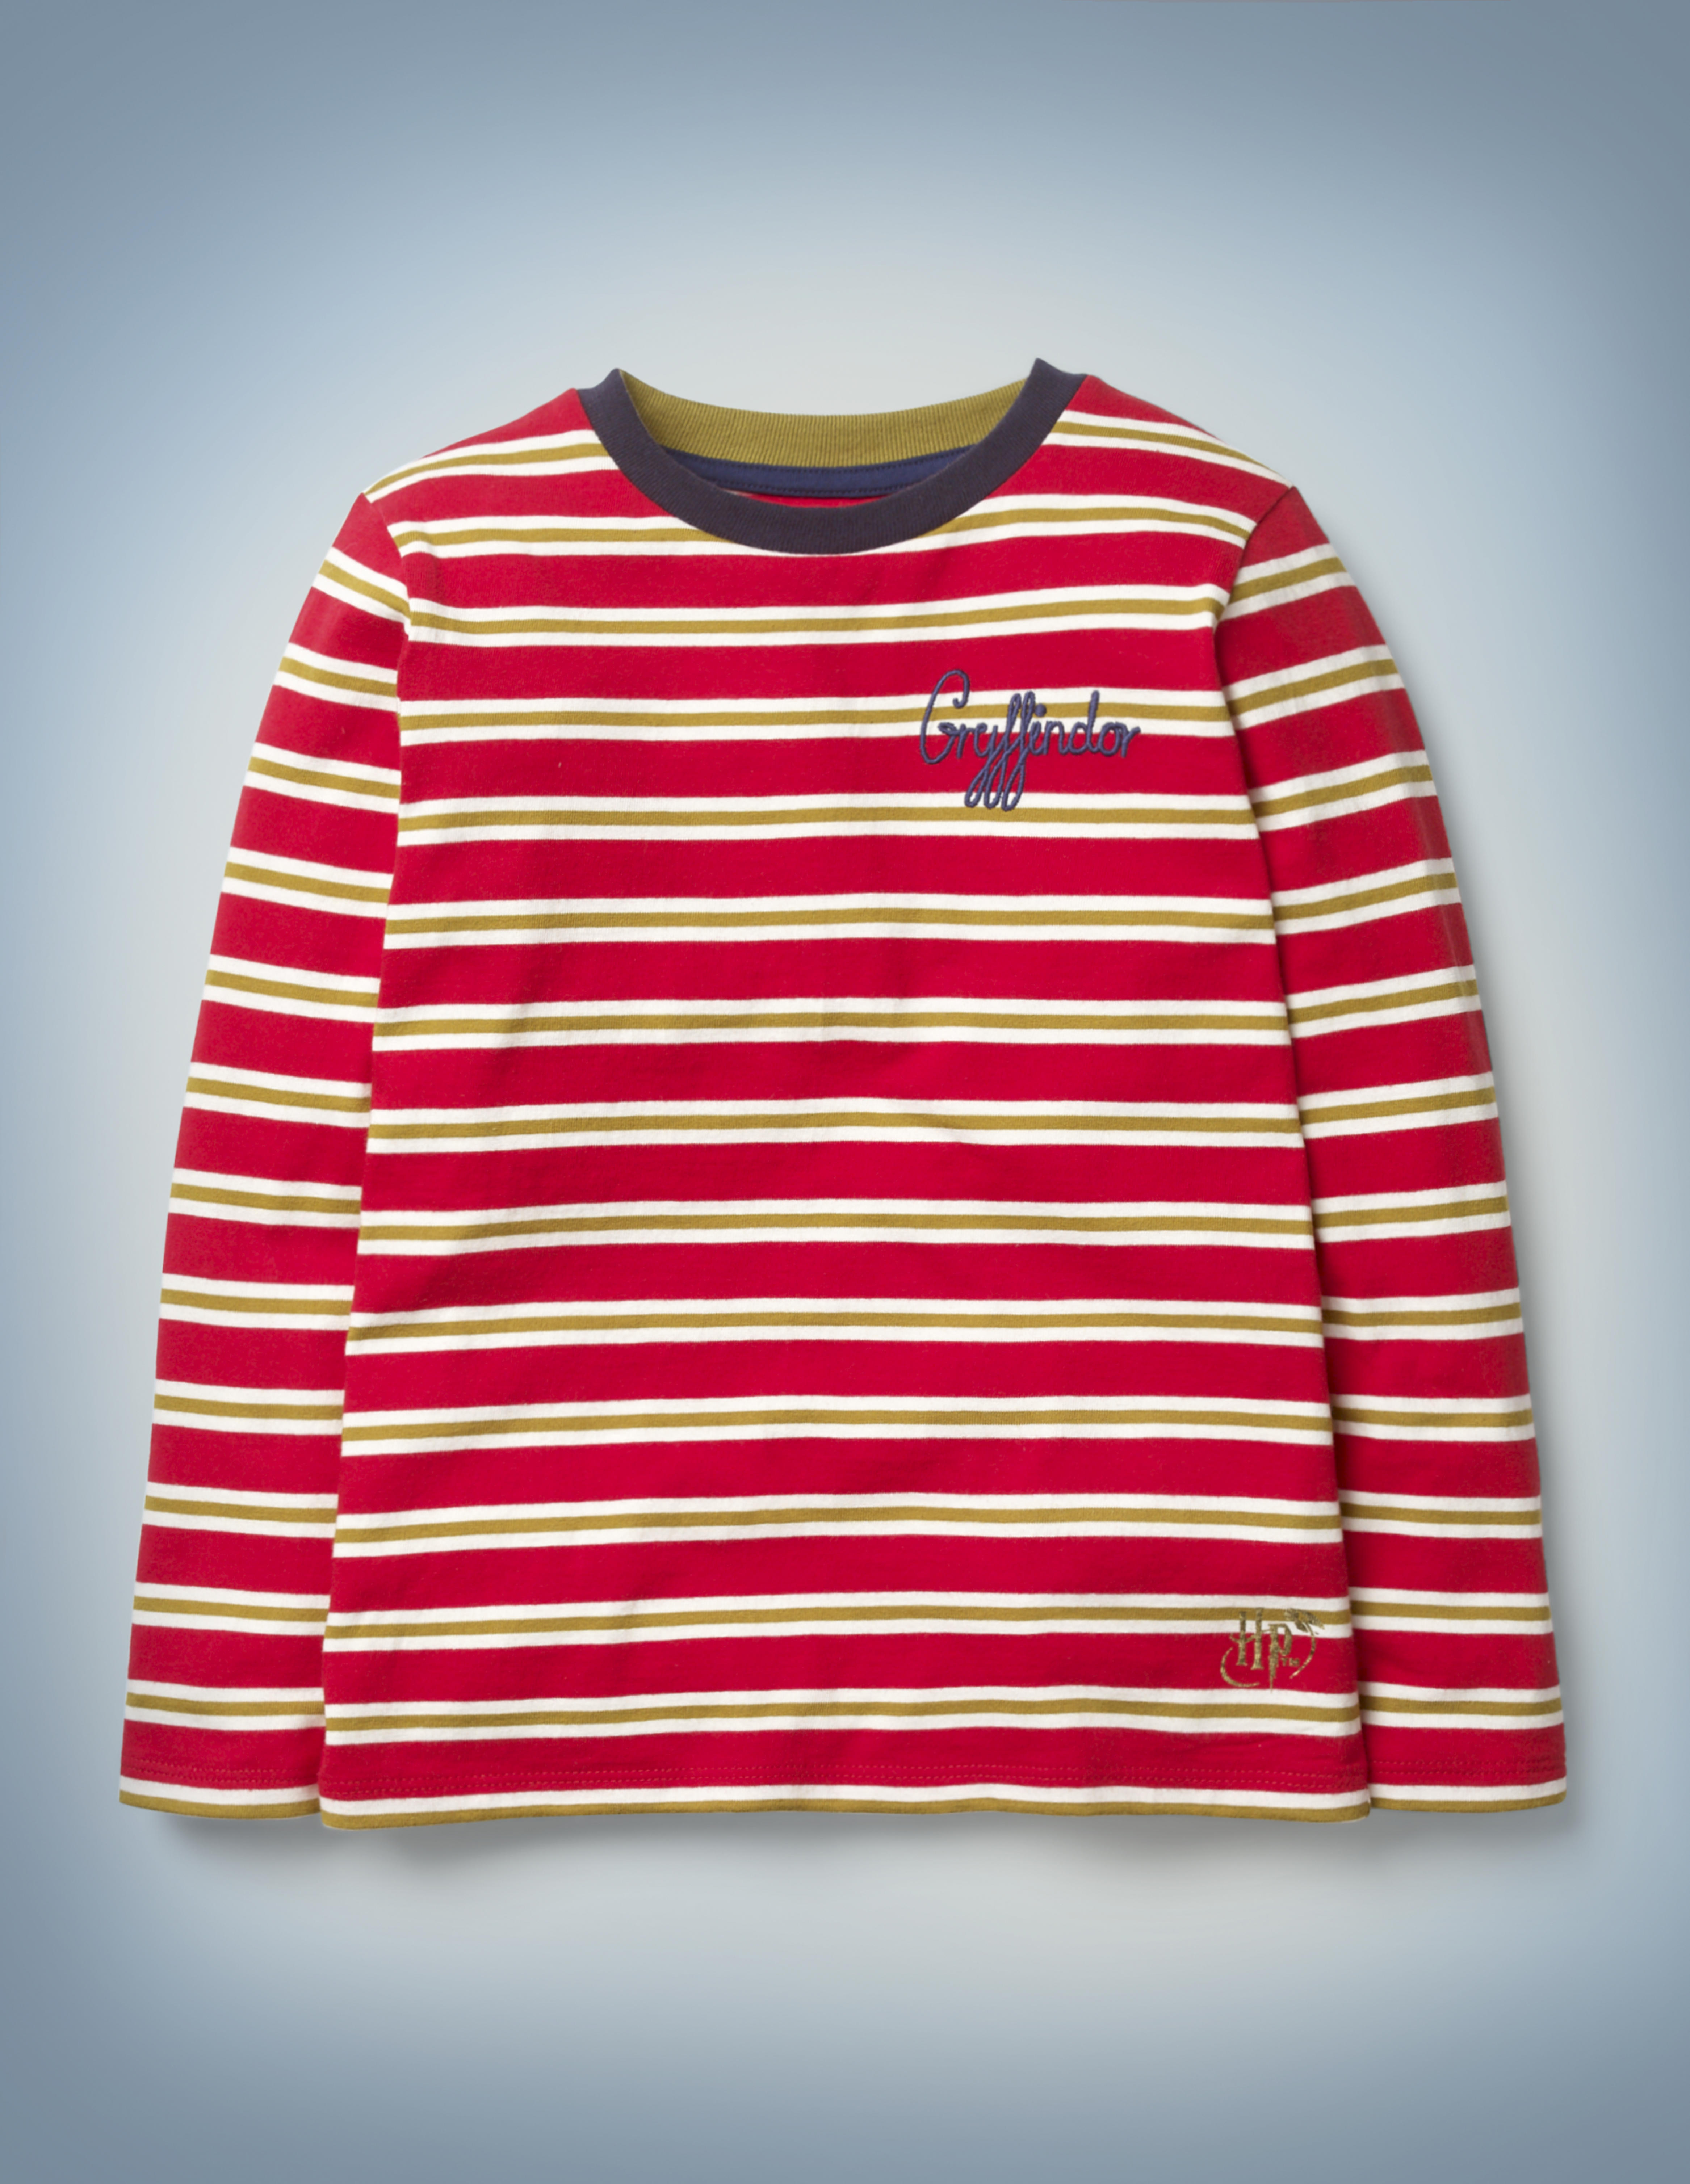 """The Mini Boden House Breton in red features all-over red and gold stripes, a blue collar, and """"Gryffindor"""" written in blue script in the front pocket area. It retails between £20 and £22."""